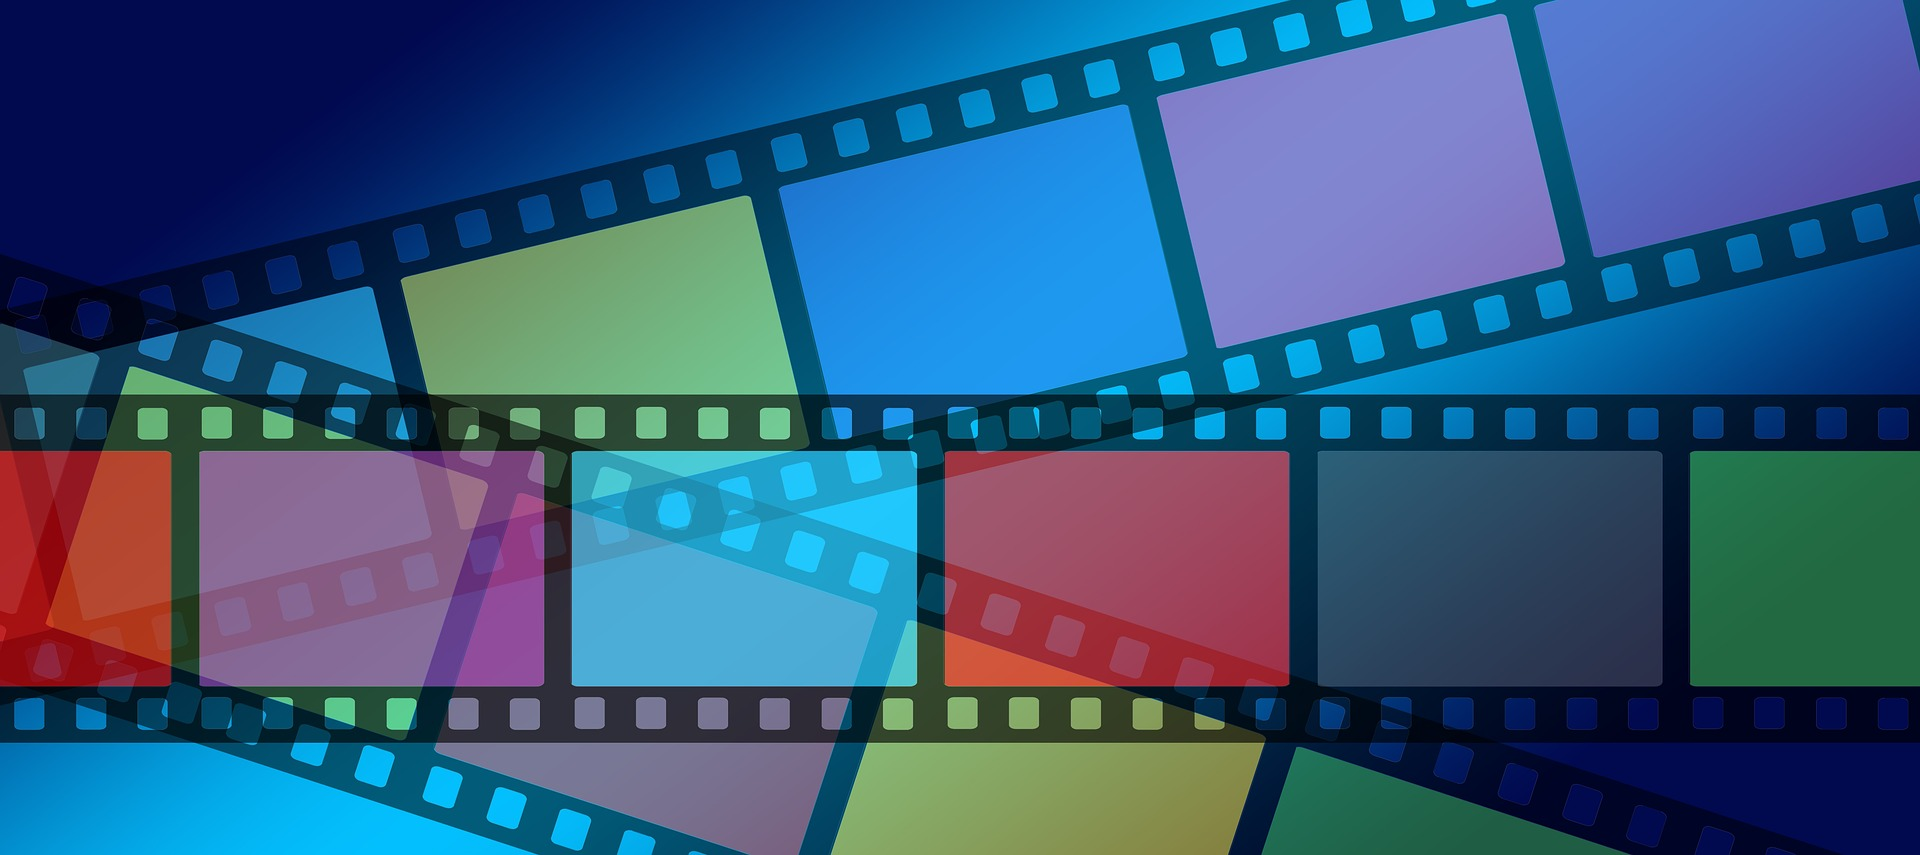 three filmstrips with different colors in each frame, laying on top of each other.